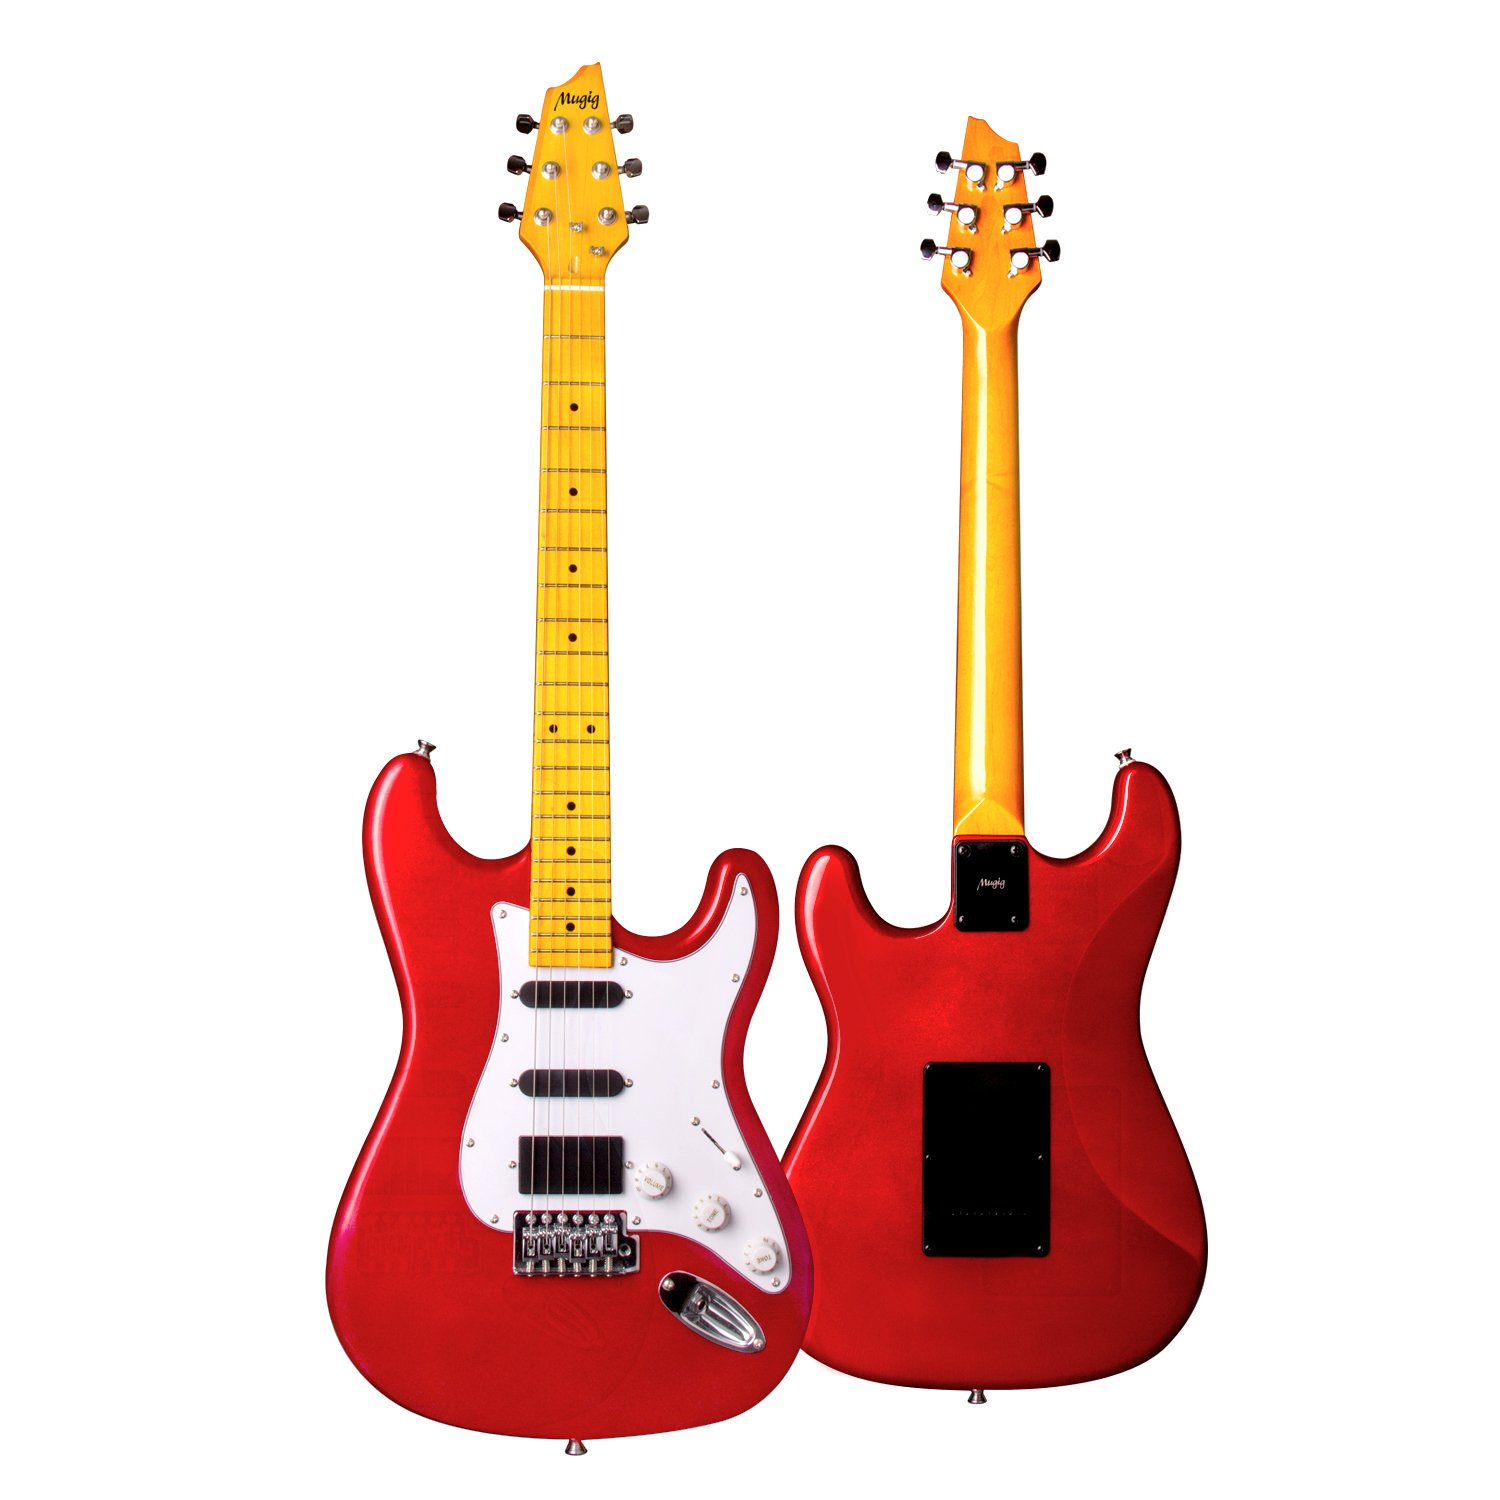 Mugig Electric Guitar 39 Inches, with Two Single-coil and One Humbucker Pickups, Glossy Surface Paint and Comfortable Feel. Electric Guitar Full Size, Poplar Body and Maple Fingerboard. GTN-1